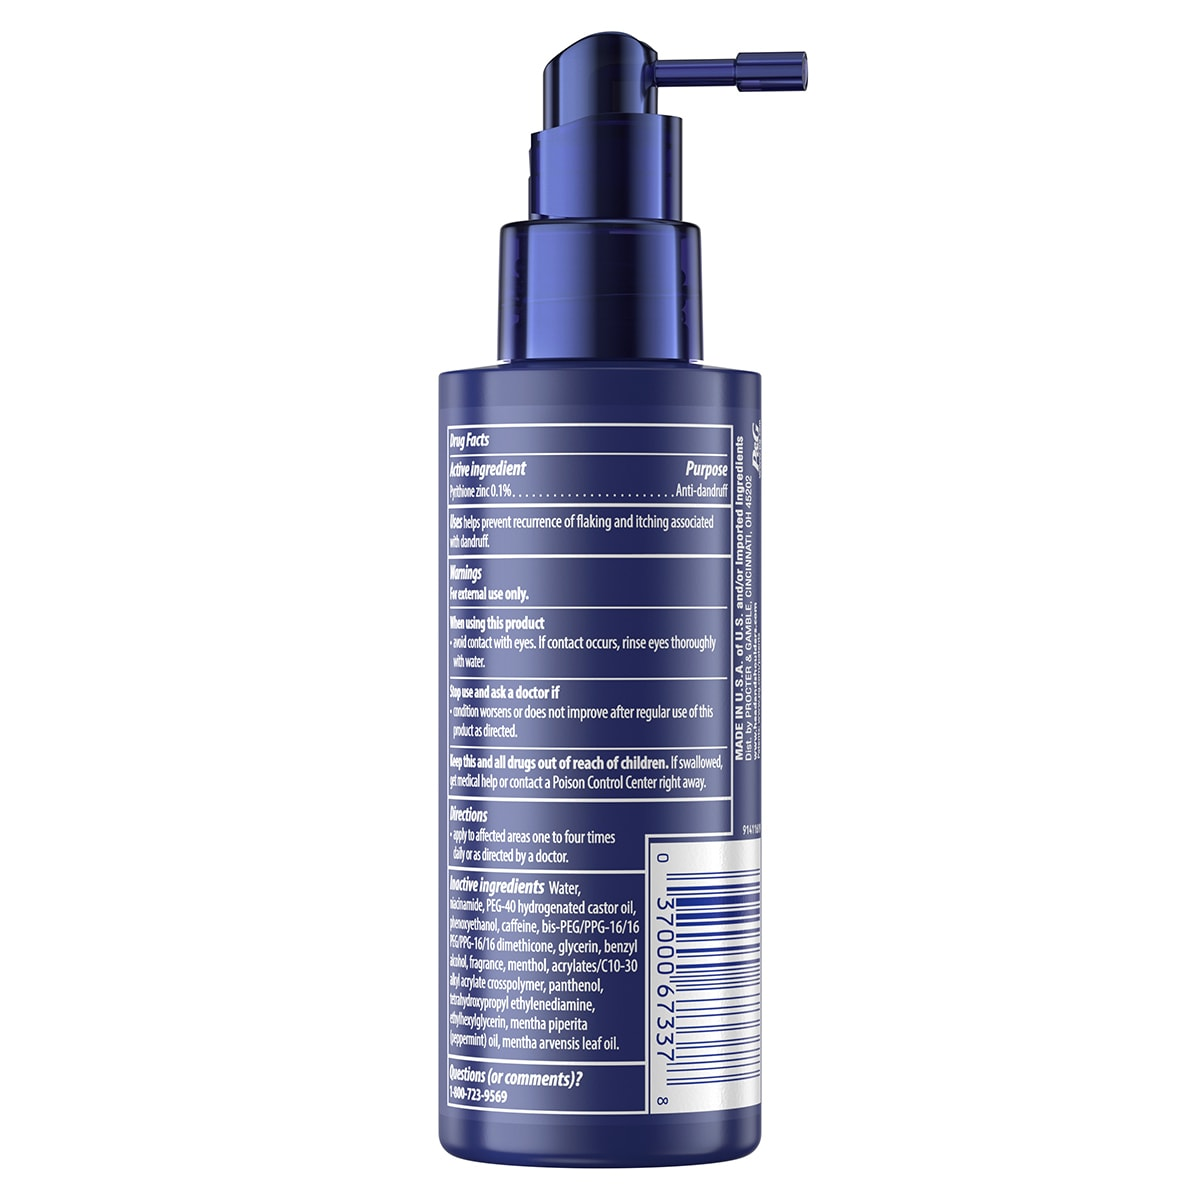 Head & Shoulders Clinical Itch Relief Scalp Mist